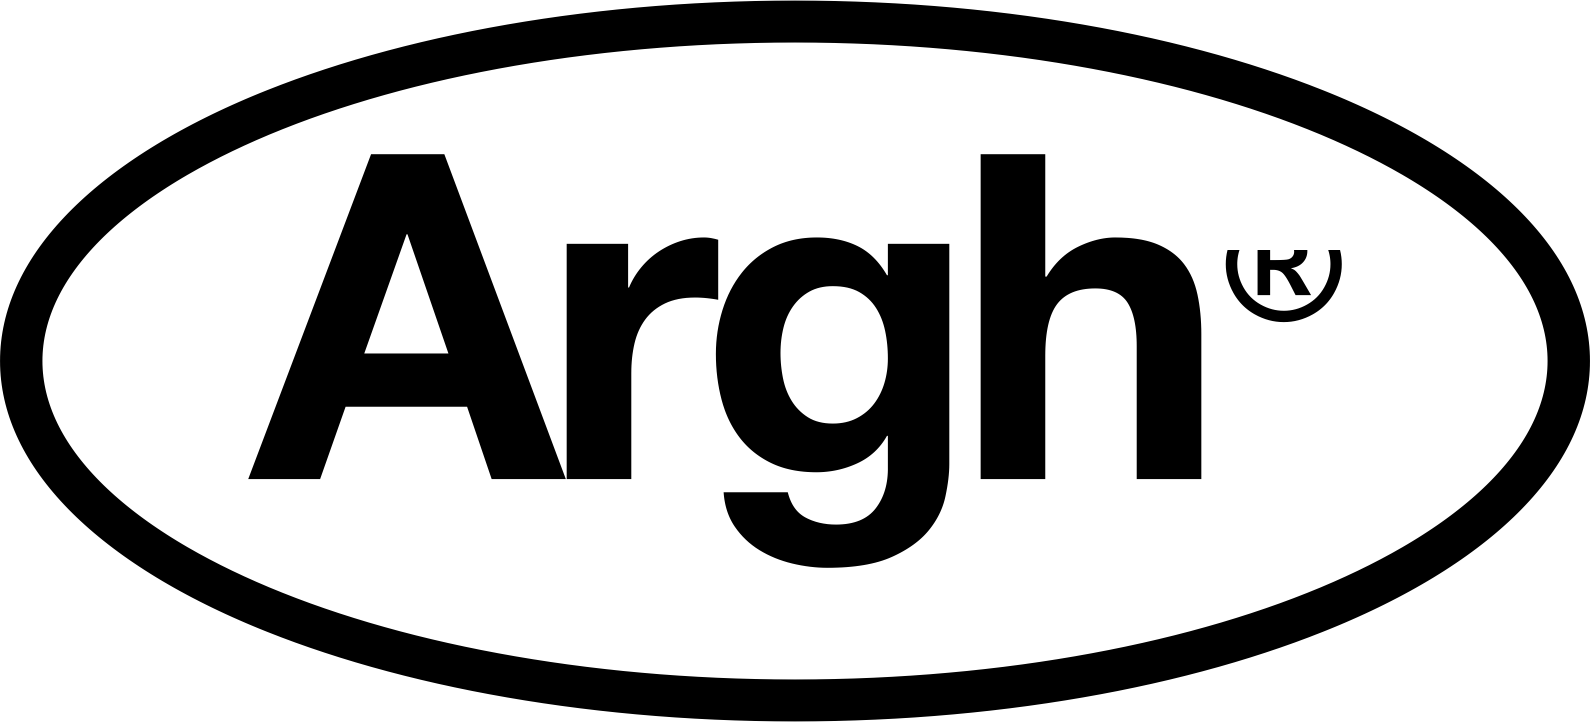 Arghinspire